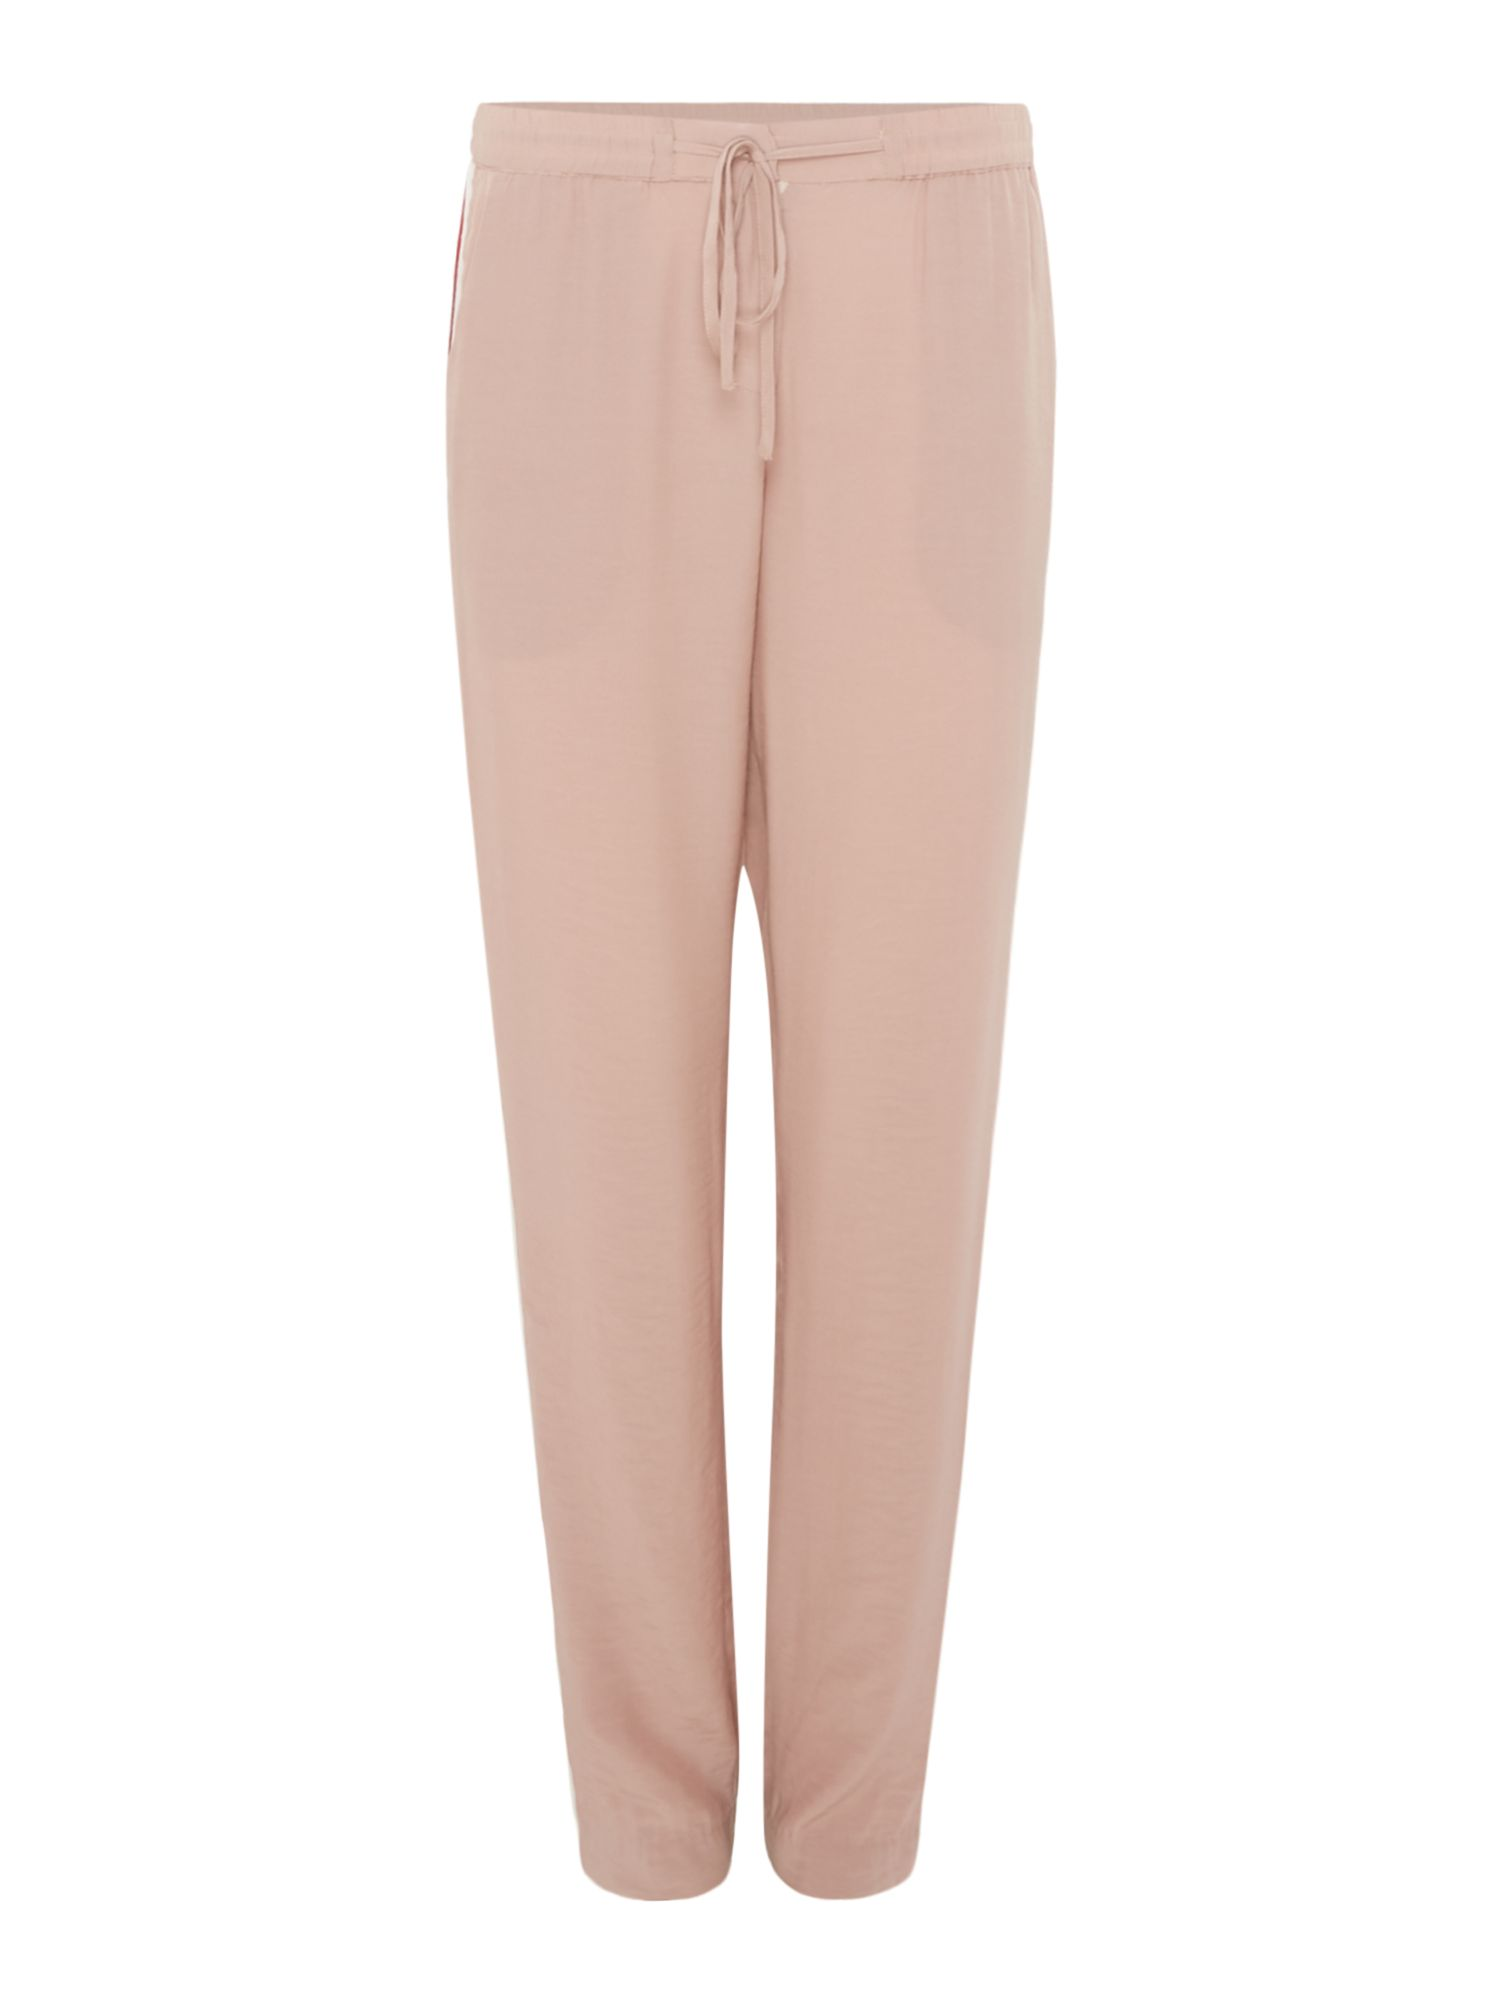 Sofie Schnoor Trouser with side stripe detail, Pink